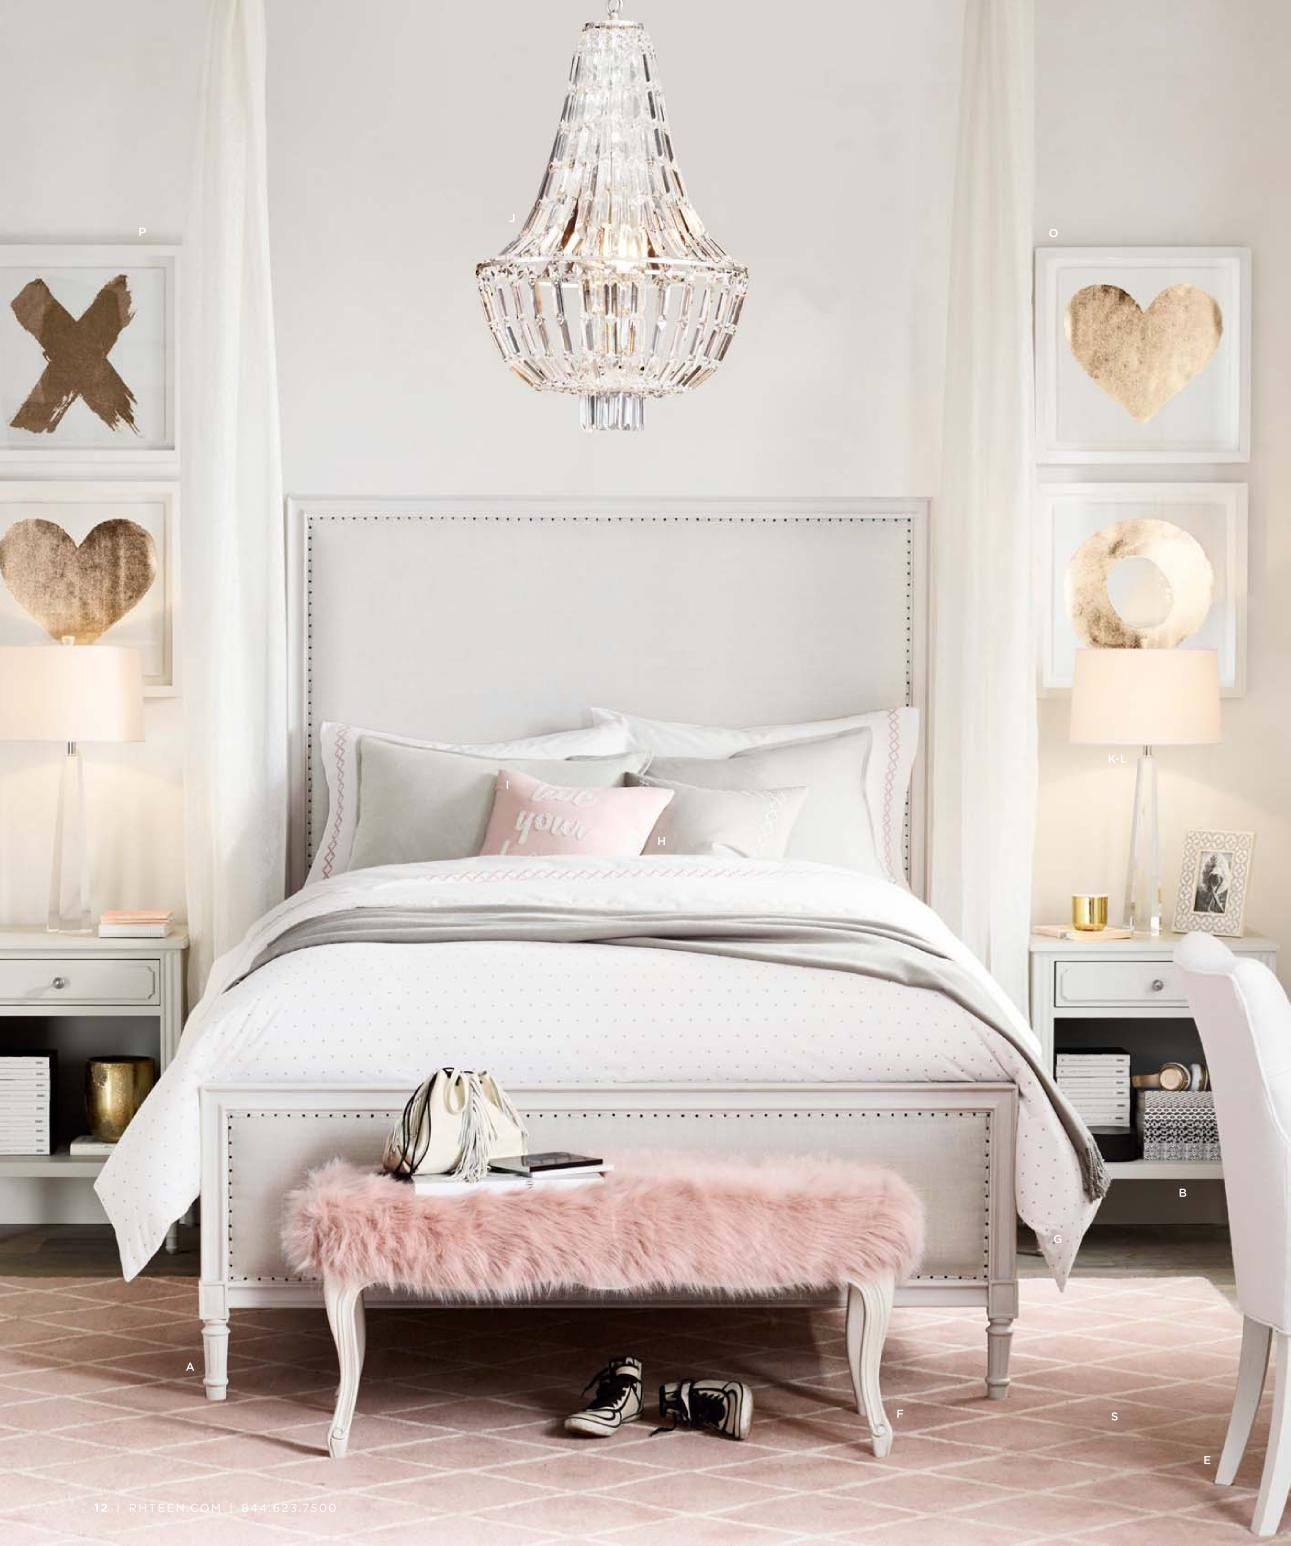 Bedroom Ideas Red And Gold Bedroom Furniture Gold Crystal Bedroom Ceiling Lights Bedroom Ideas Green: Pink White And Gold Bedroom 32